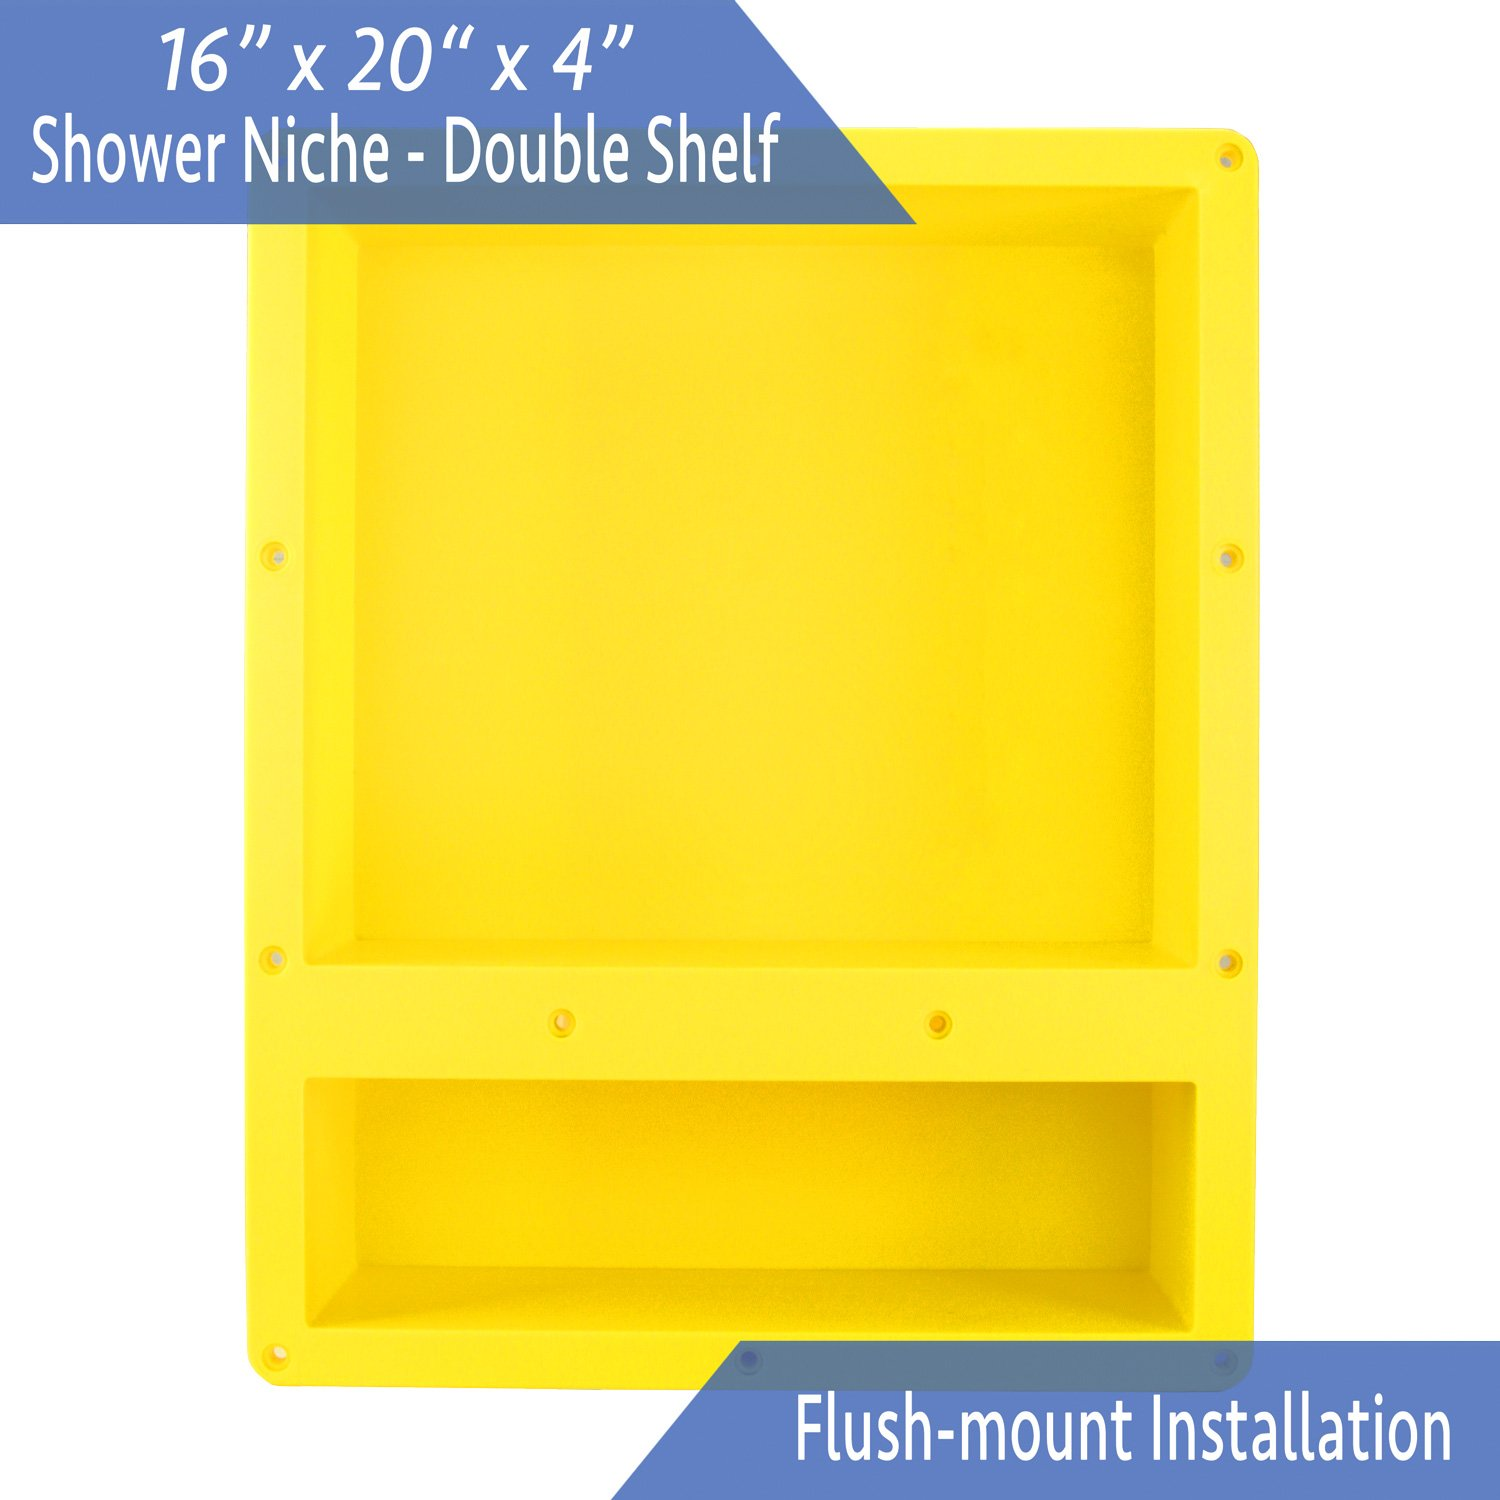 Ready For Tile Waterproof Leak Proof 16'' x 20'' Bathroom Recessed Shower Niche - Double Bathroom Shelf Organizer Storage For Shampoo & Toiletry Storage - Flush Mount Installation